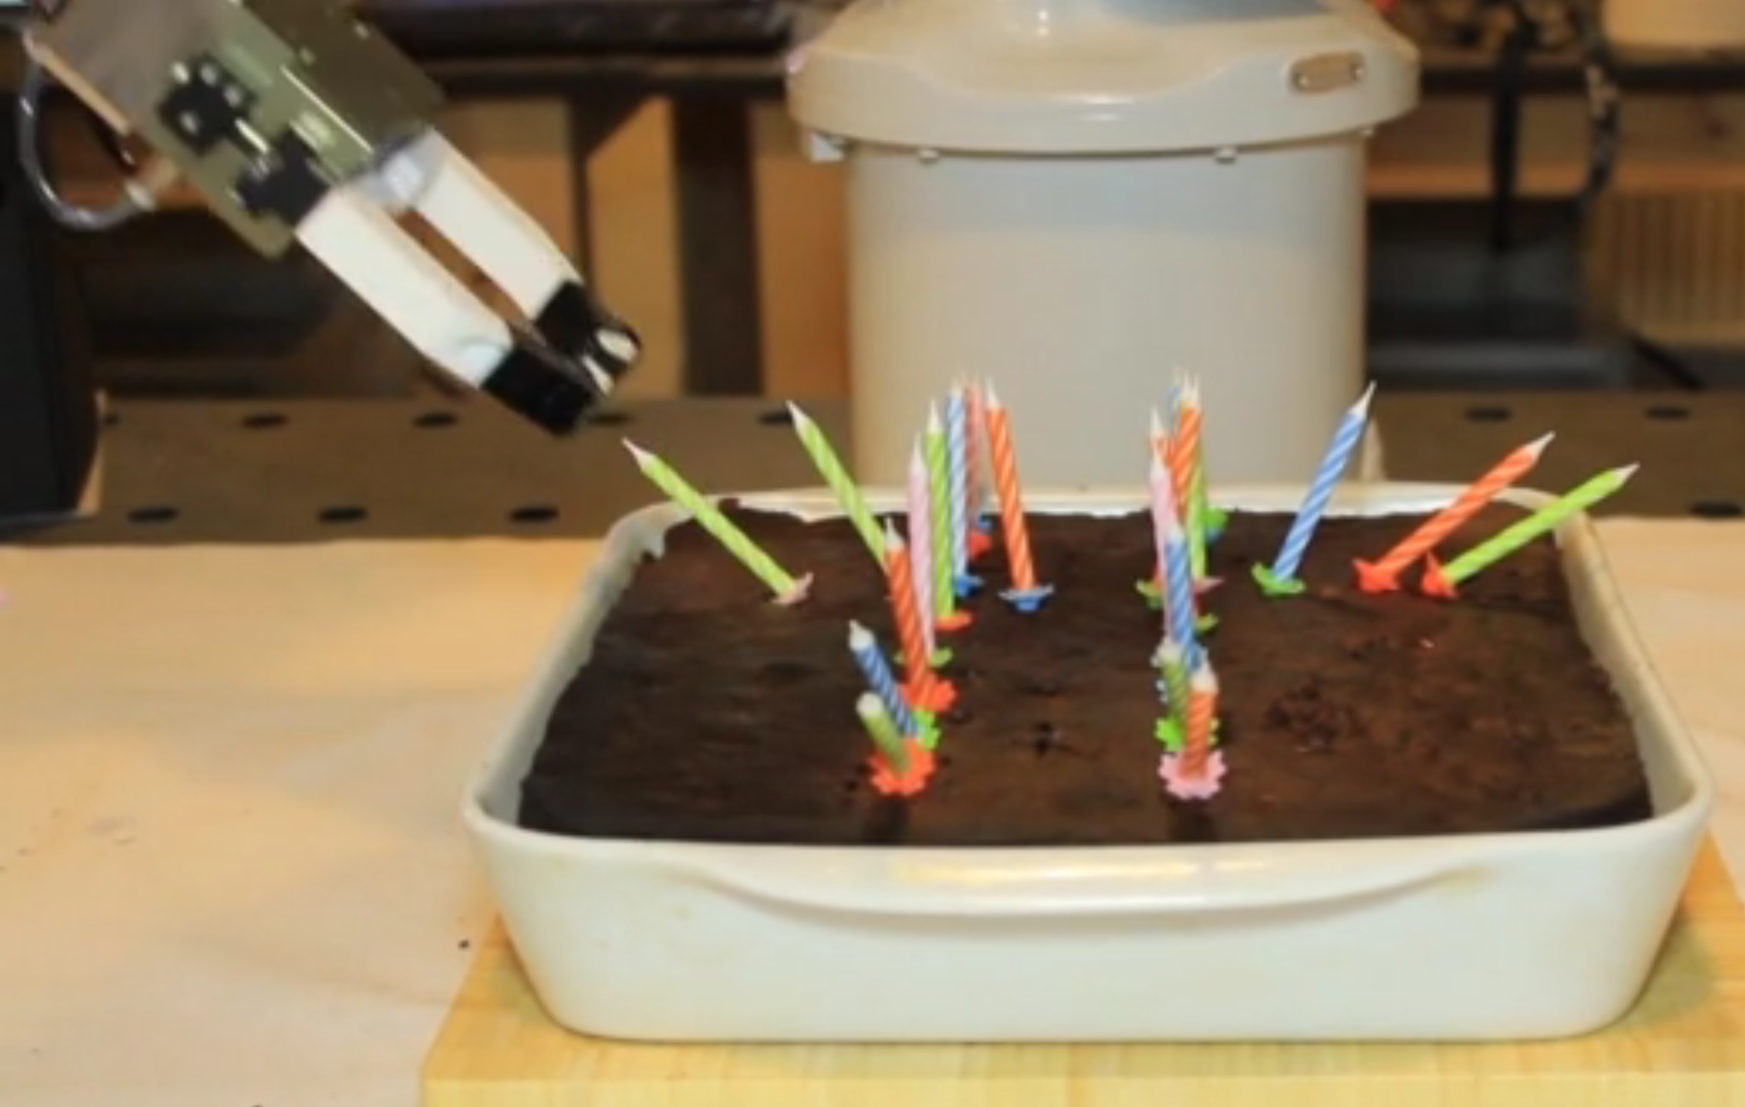 Robot placed birthday candles